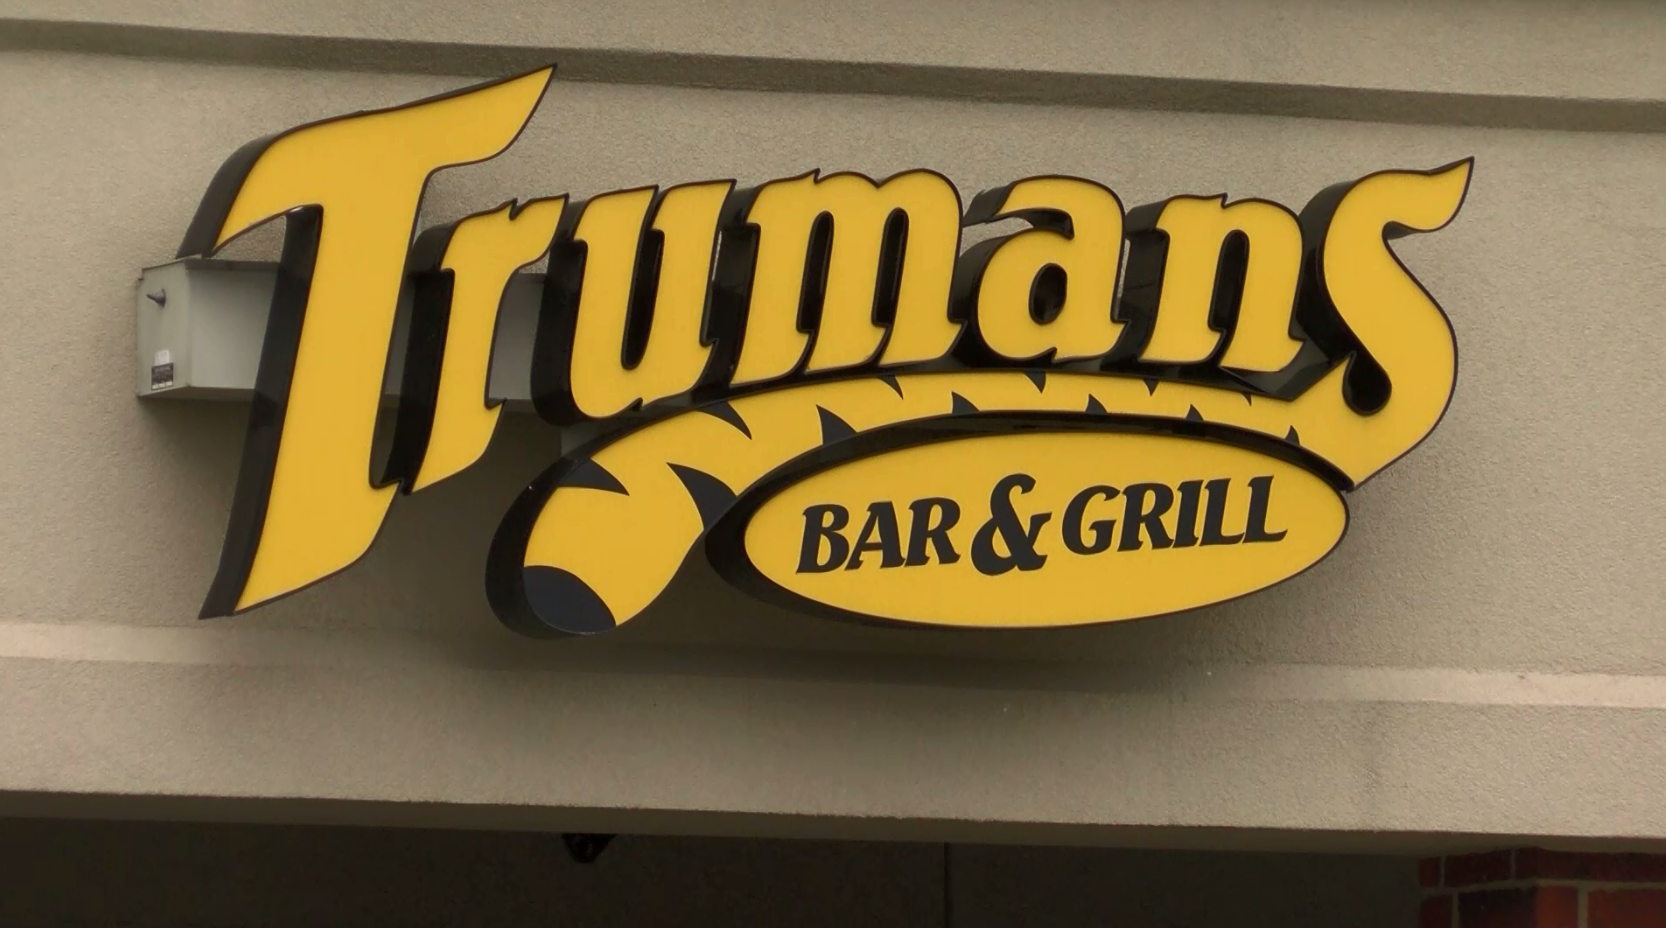 Truman's Bar & Grill was charged with violating the COVID-19 health order.